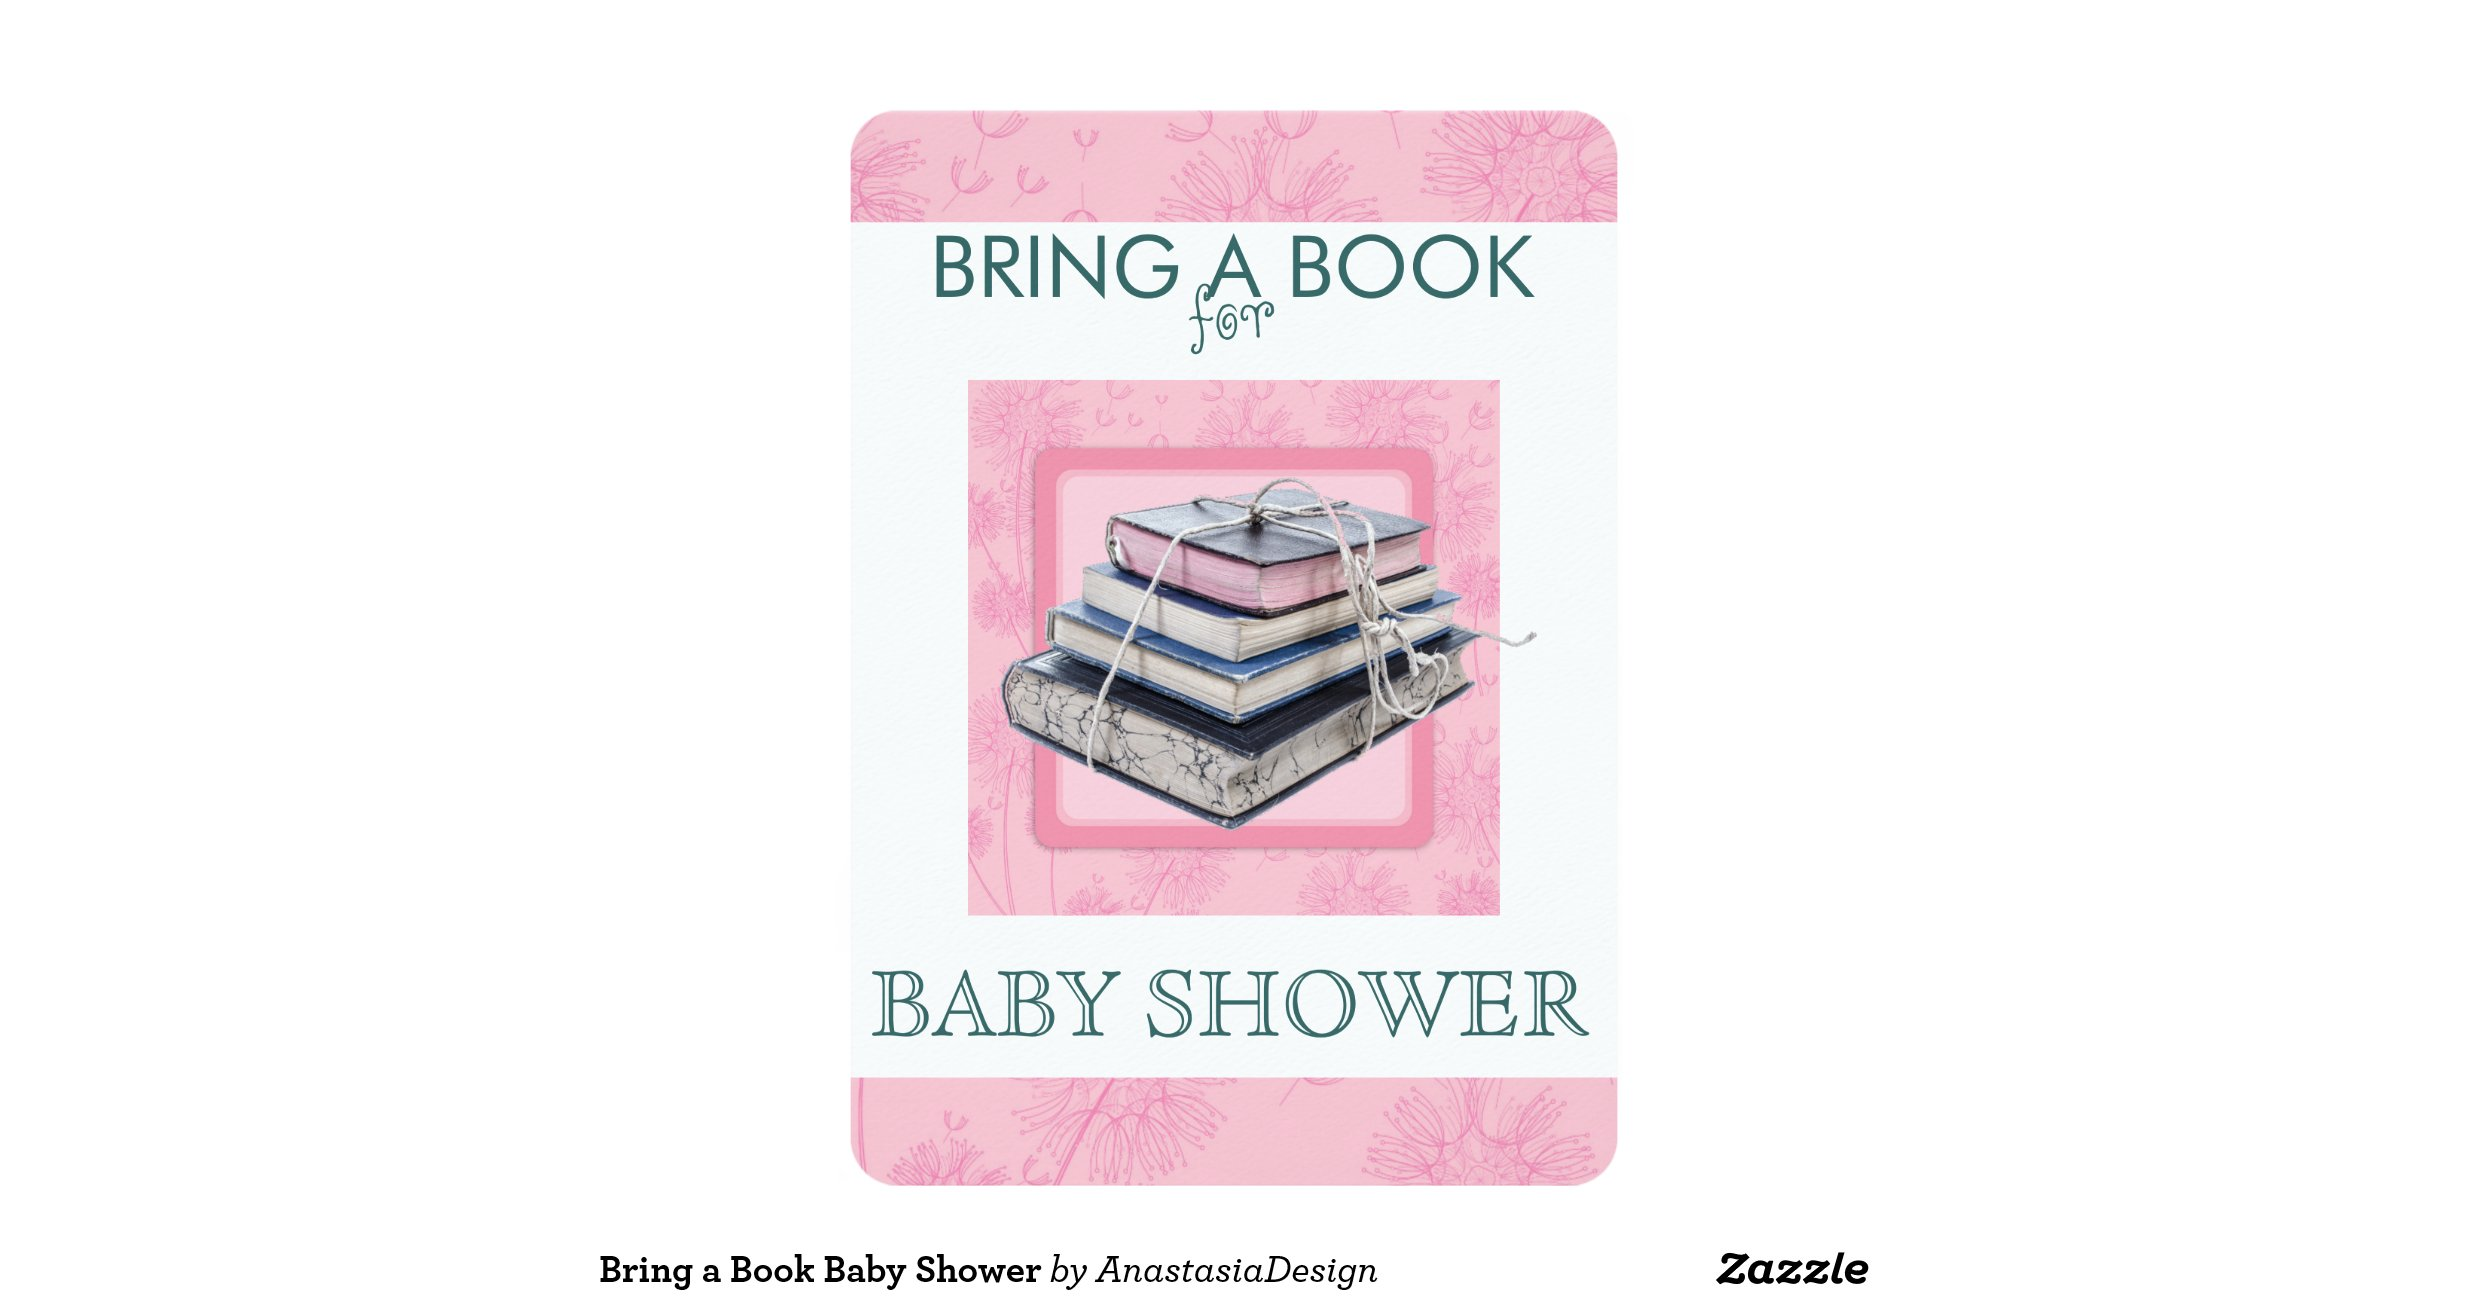 Snap Bring a book library Baby Shower invitations Zazzle photos on ...